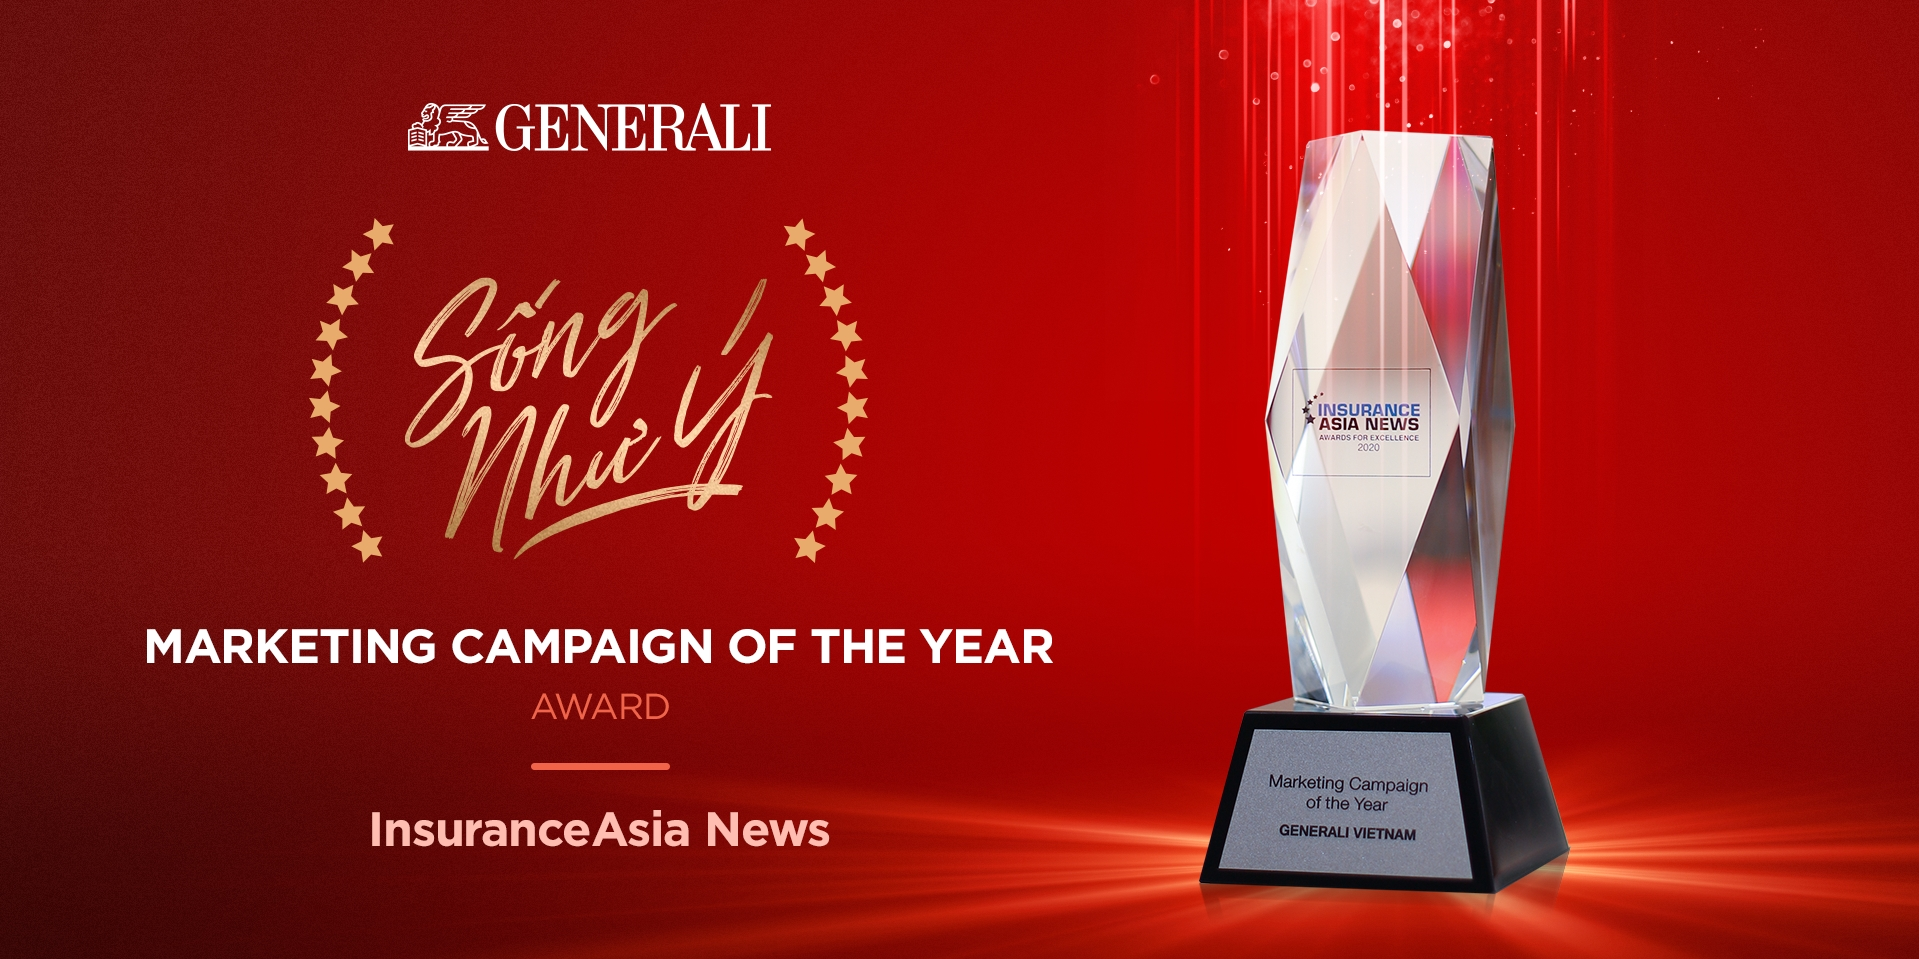 """Generali Vietnam's """"Song Nhu Y"""" awarded Marketing Campaign of the Year"""